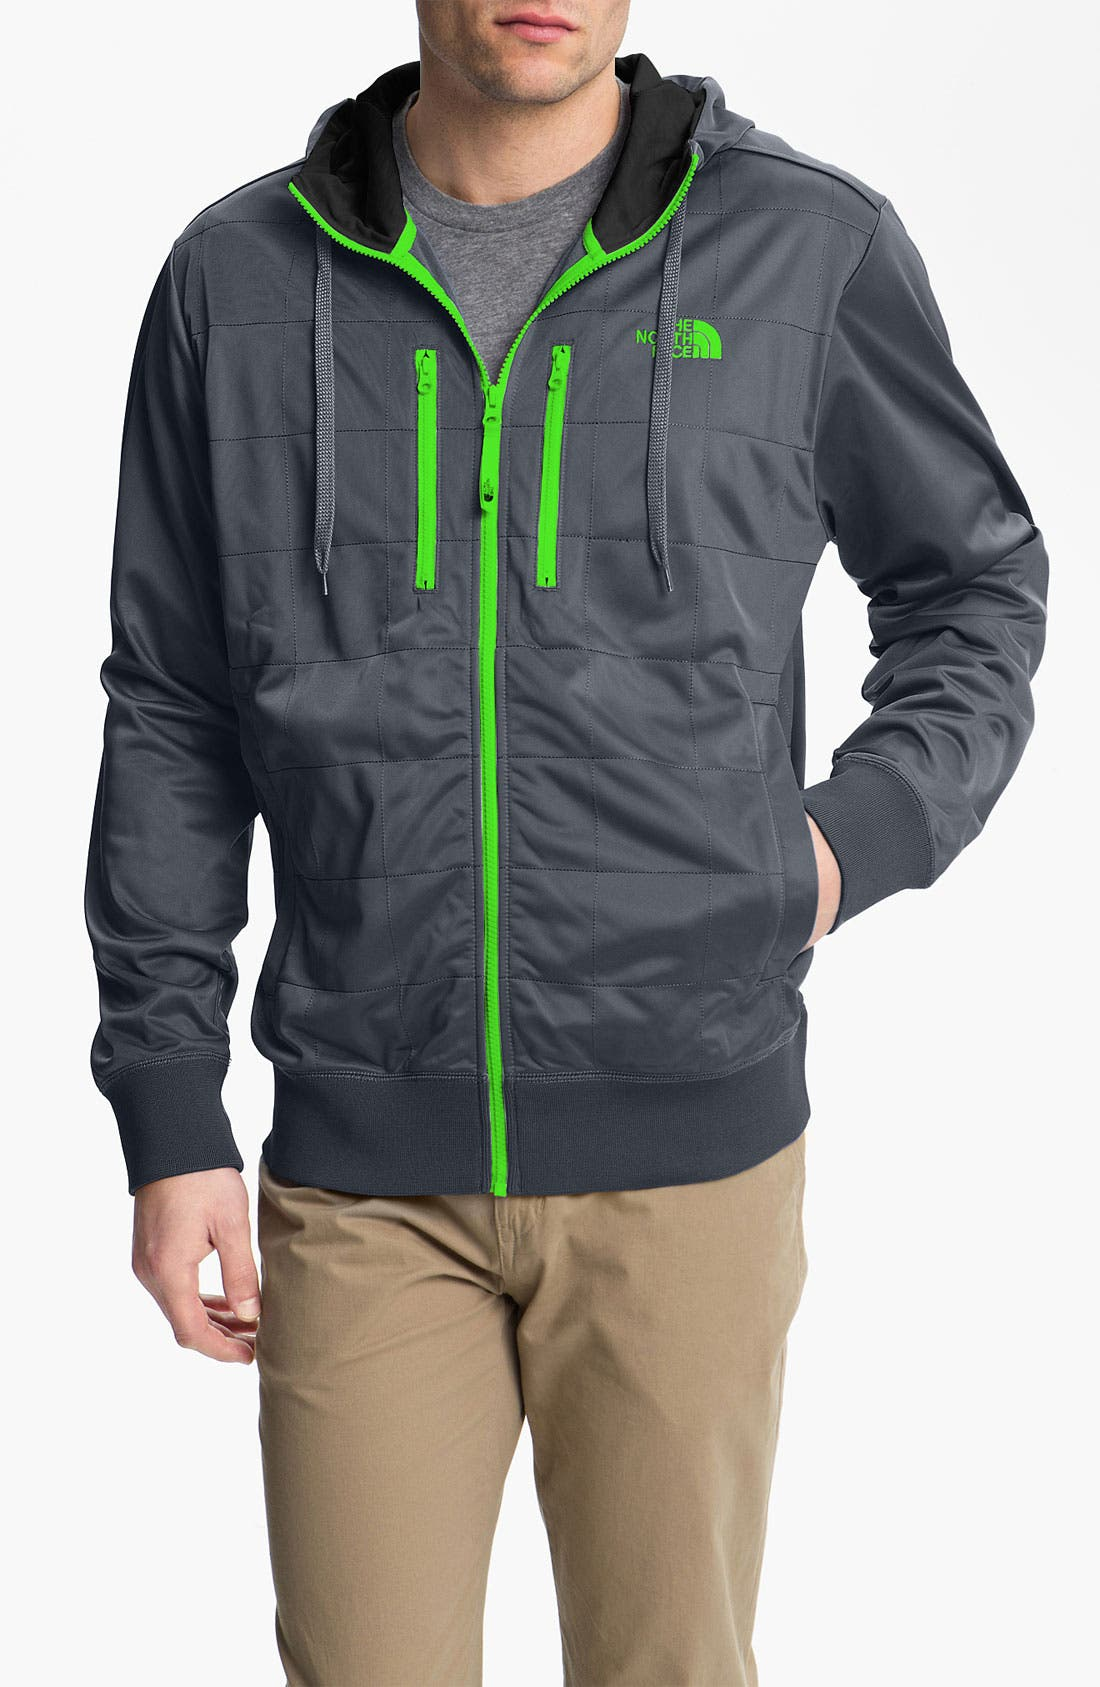 Alternate Image 1 Selected - The North Face 'Sandoval' Zip Hoodie